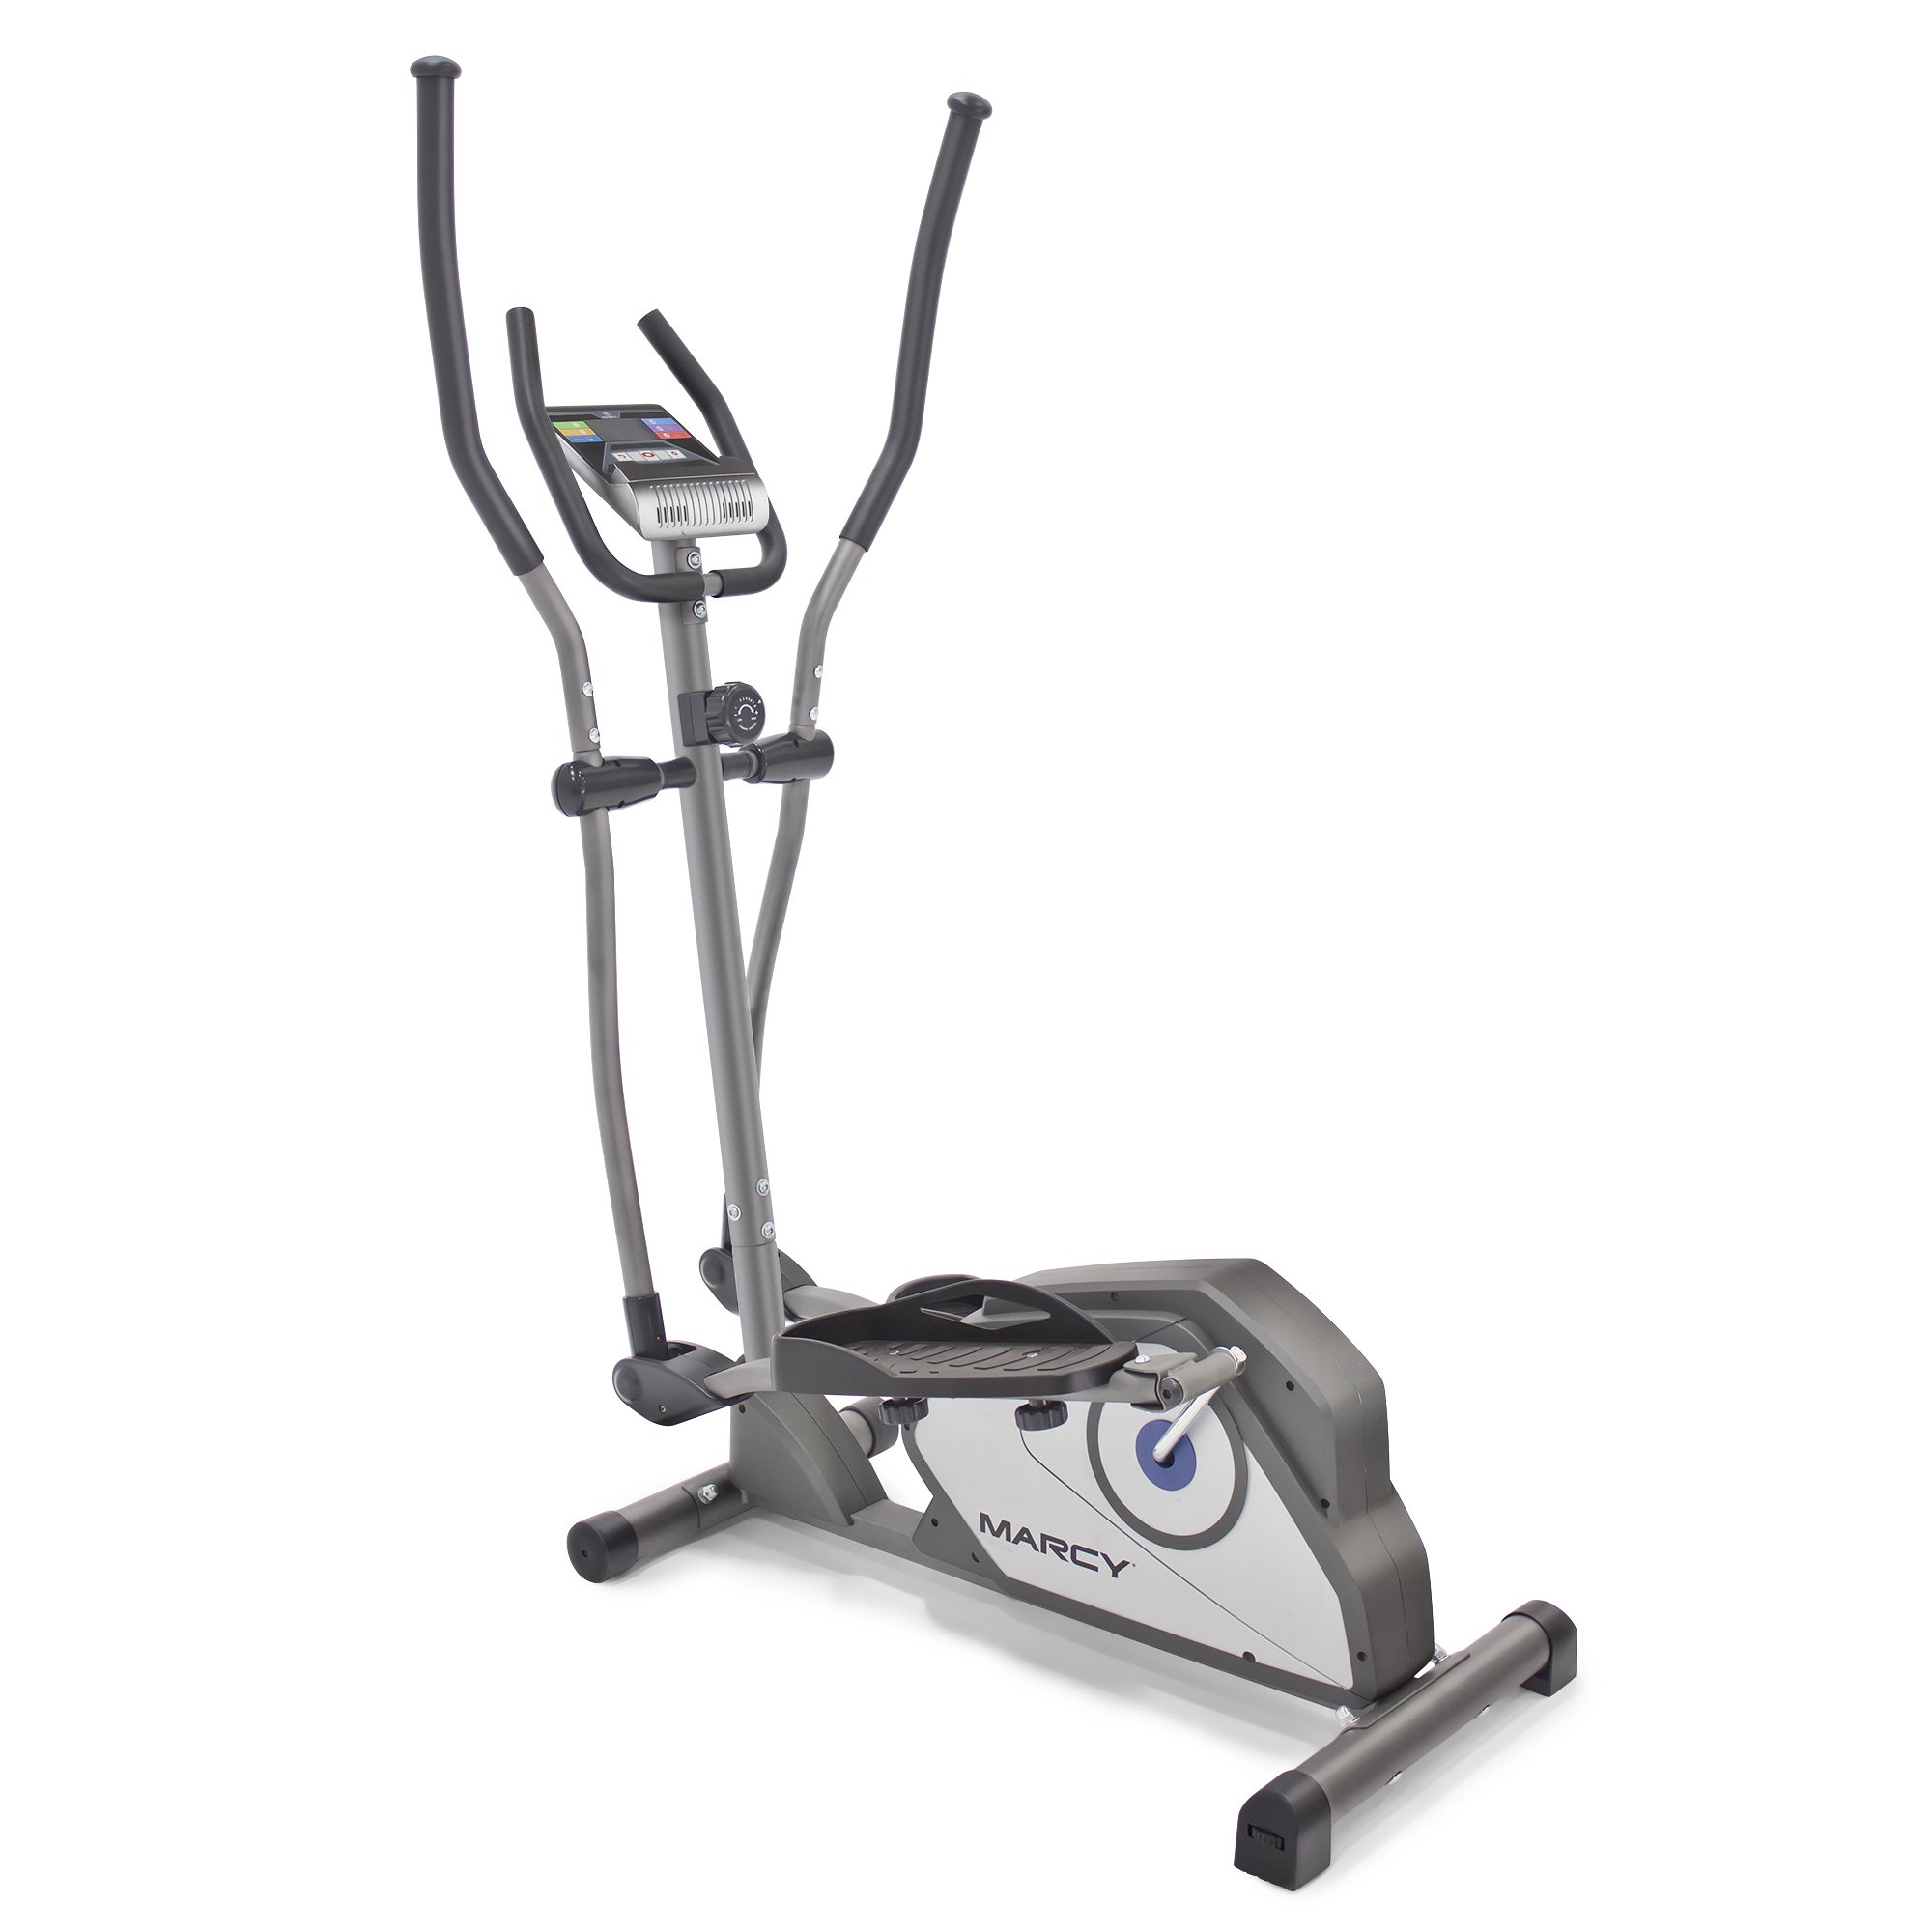 Marcy Magnetic Elliptical Trainer Cardio Workout Machine with Transport Wheels NS-40501E by Marcy (Image #1)